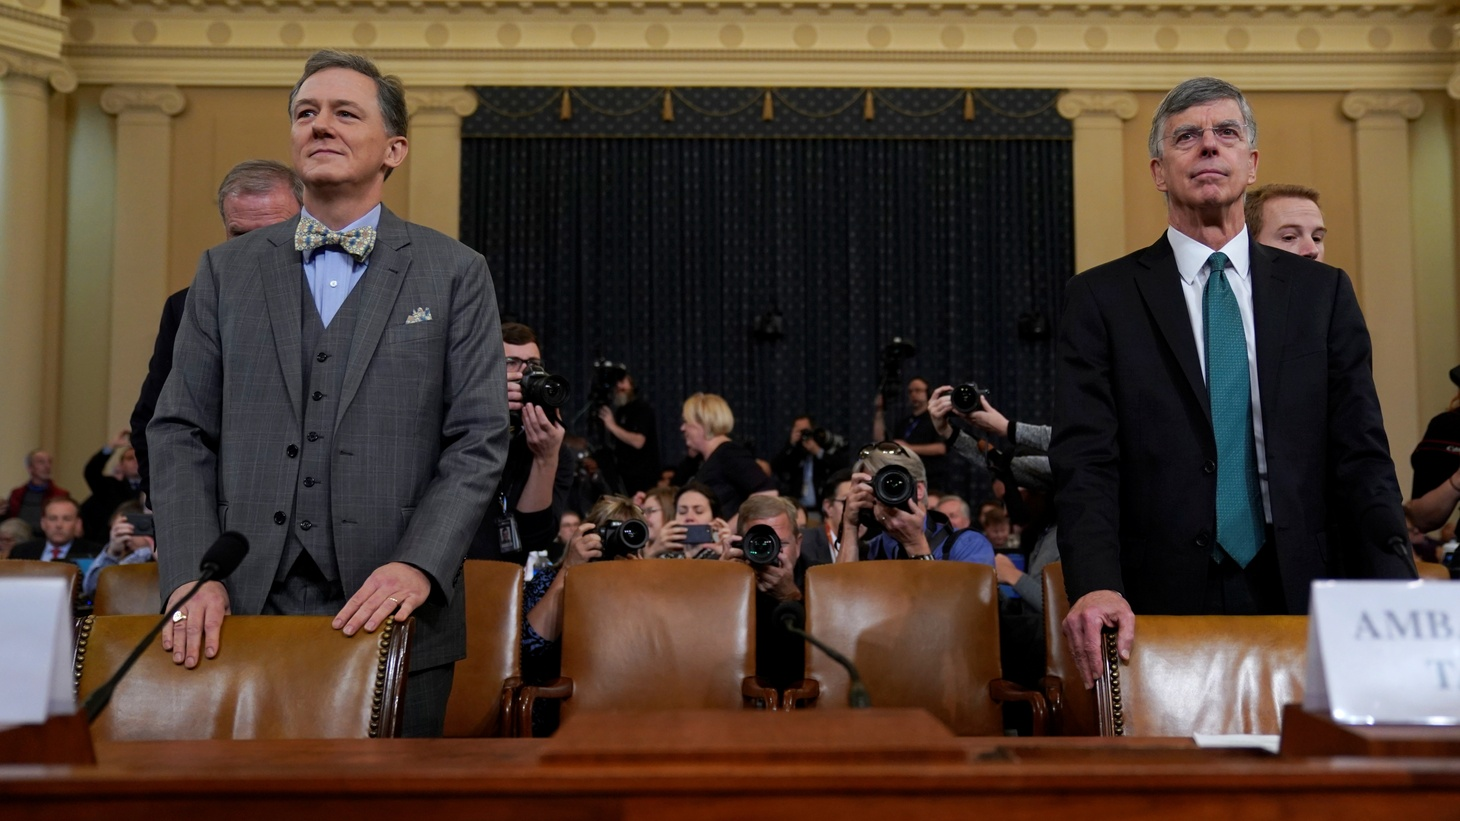 George Kent, Deputy Assistant Secretary of State for European and Eurasian Affairs, appears alongside Ambassador Bill Taylor during a House Intelligence Committee impeachment inquiry hearing into U.S. President Donald Trump on Capitol Hill in Washington, U.S., November 13, 2019.